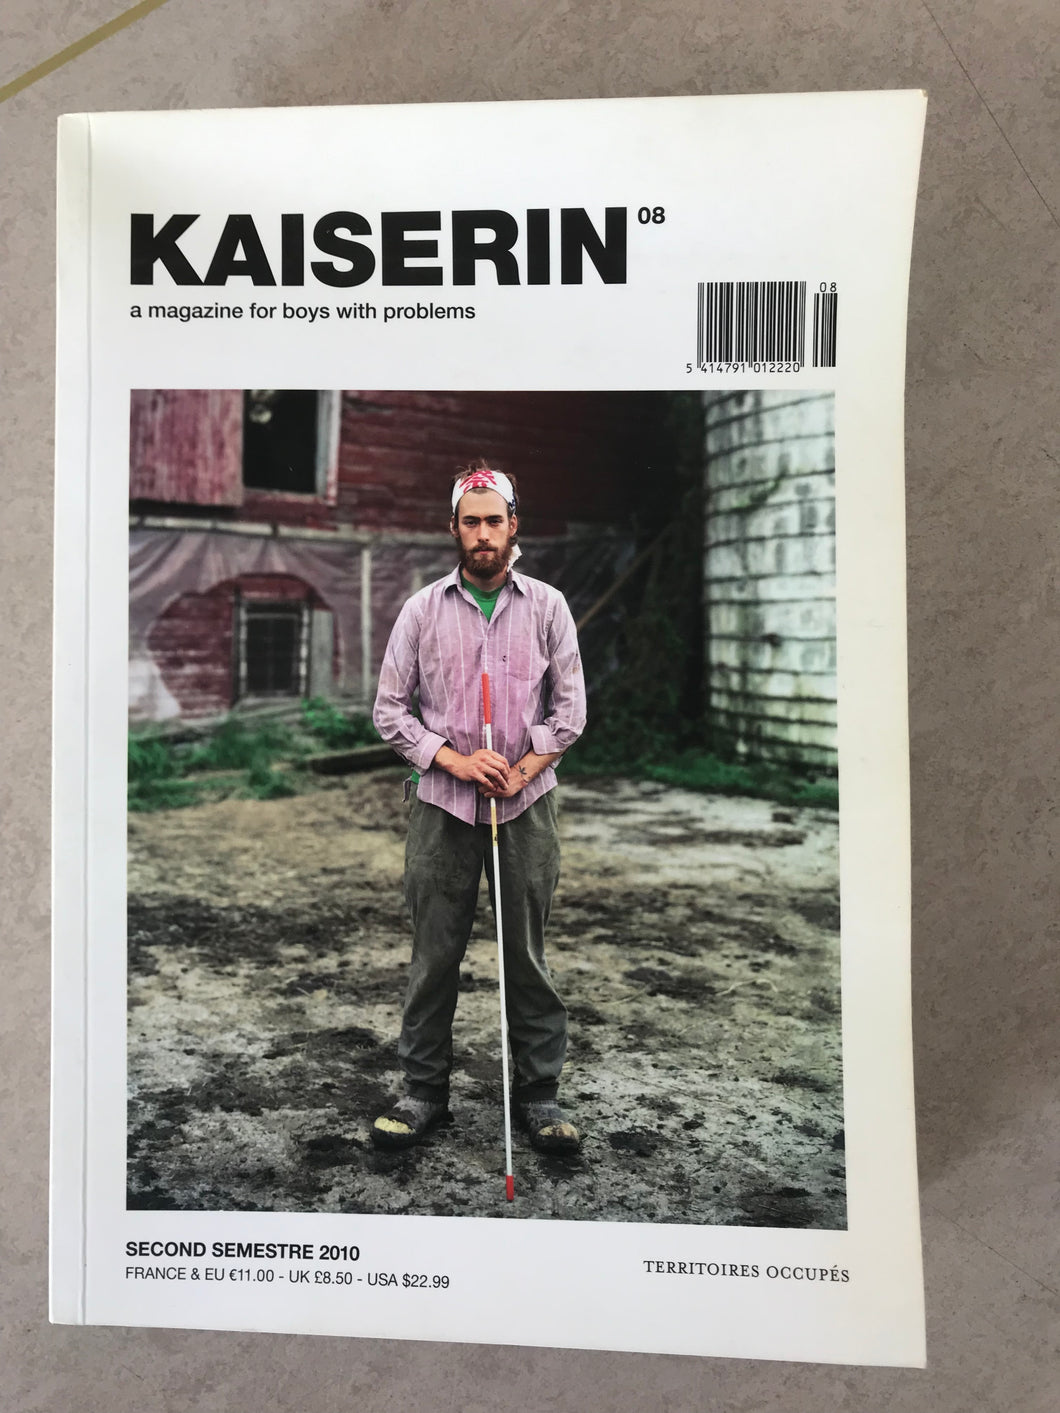 KAISERIN ISSUE NO. 08